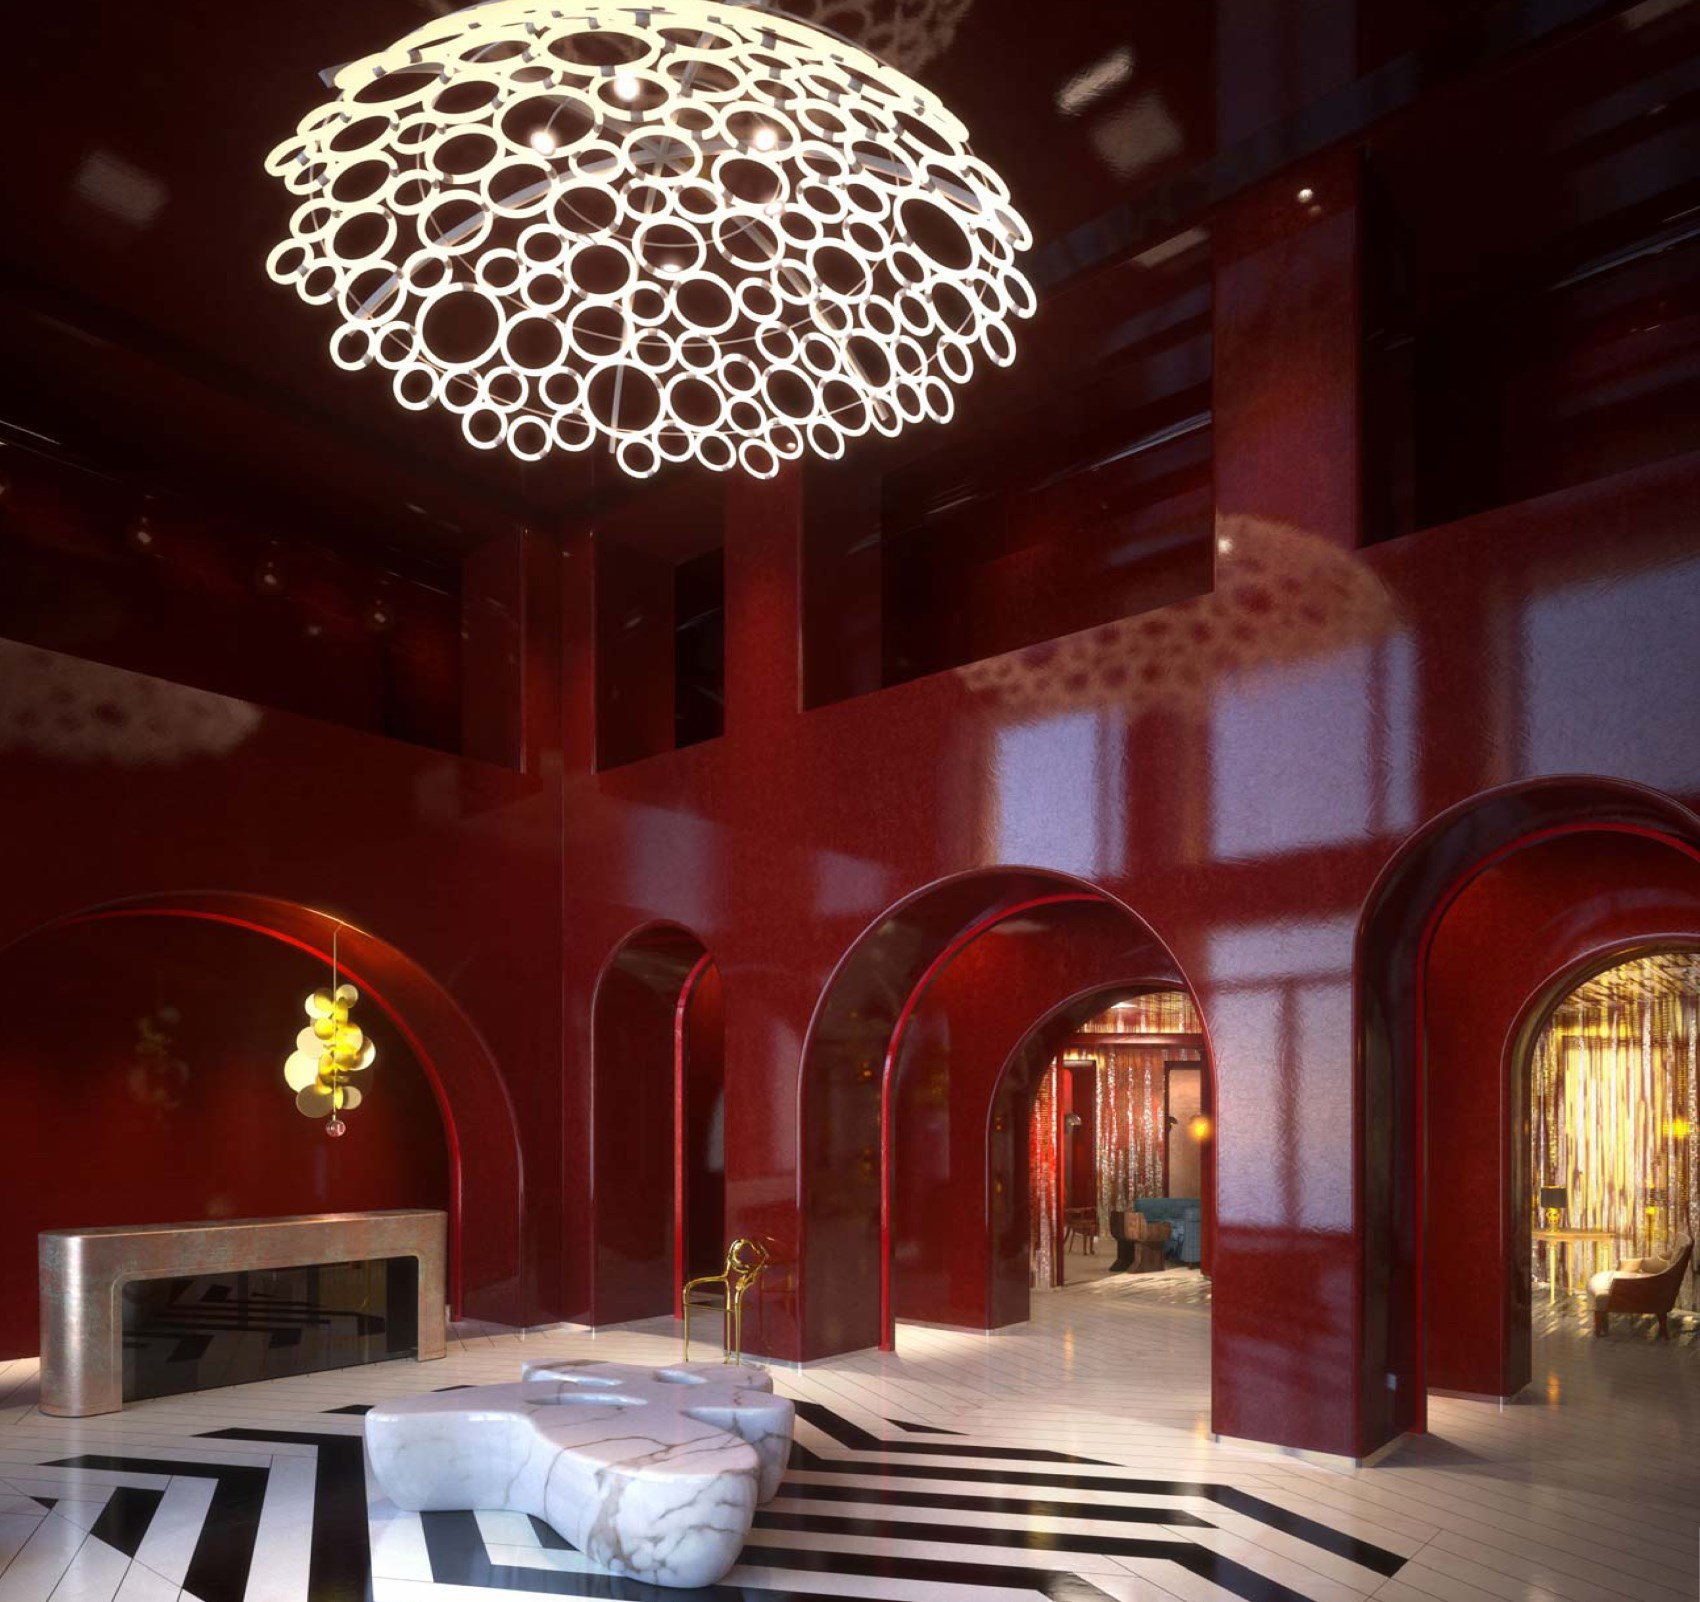 Hotel du Louvre by Tristan Auer Masion & Objet Paris Designer of the Year 2017 - red lacquer walls - red black and white interior design tristan auer Tristan Auer: Maison & Objet 2017 Designer of the Year & Car Tailor 7388e983c4ecabfe9b42b45433ef72b1